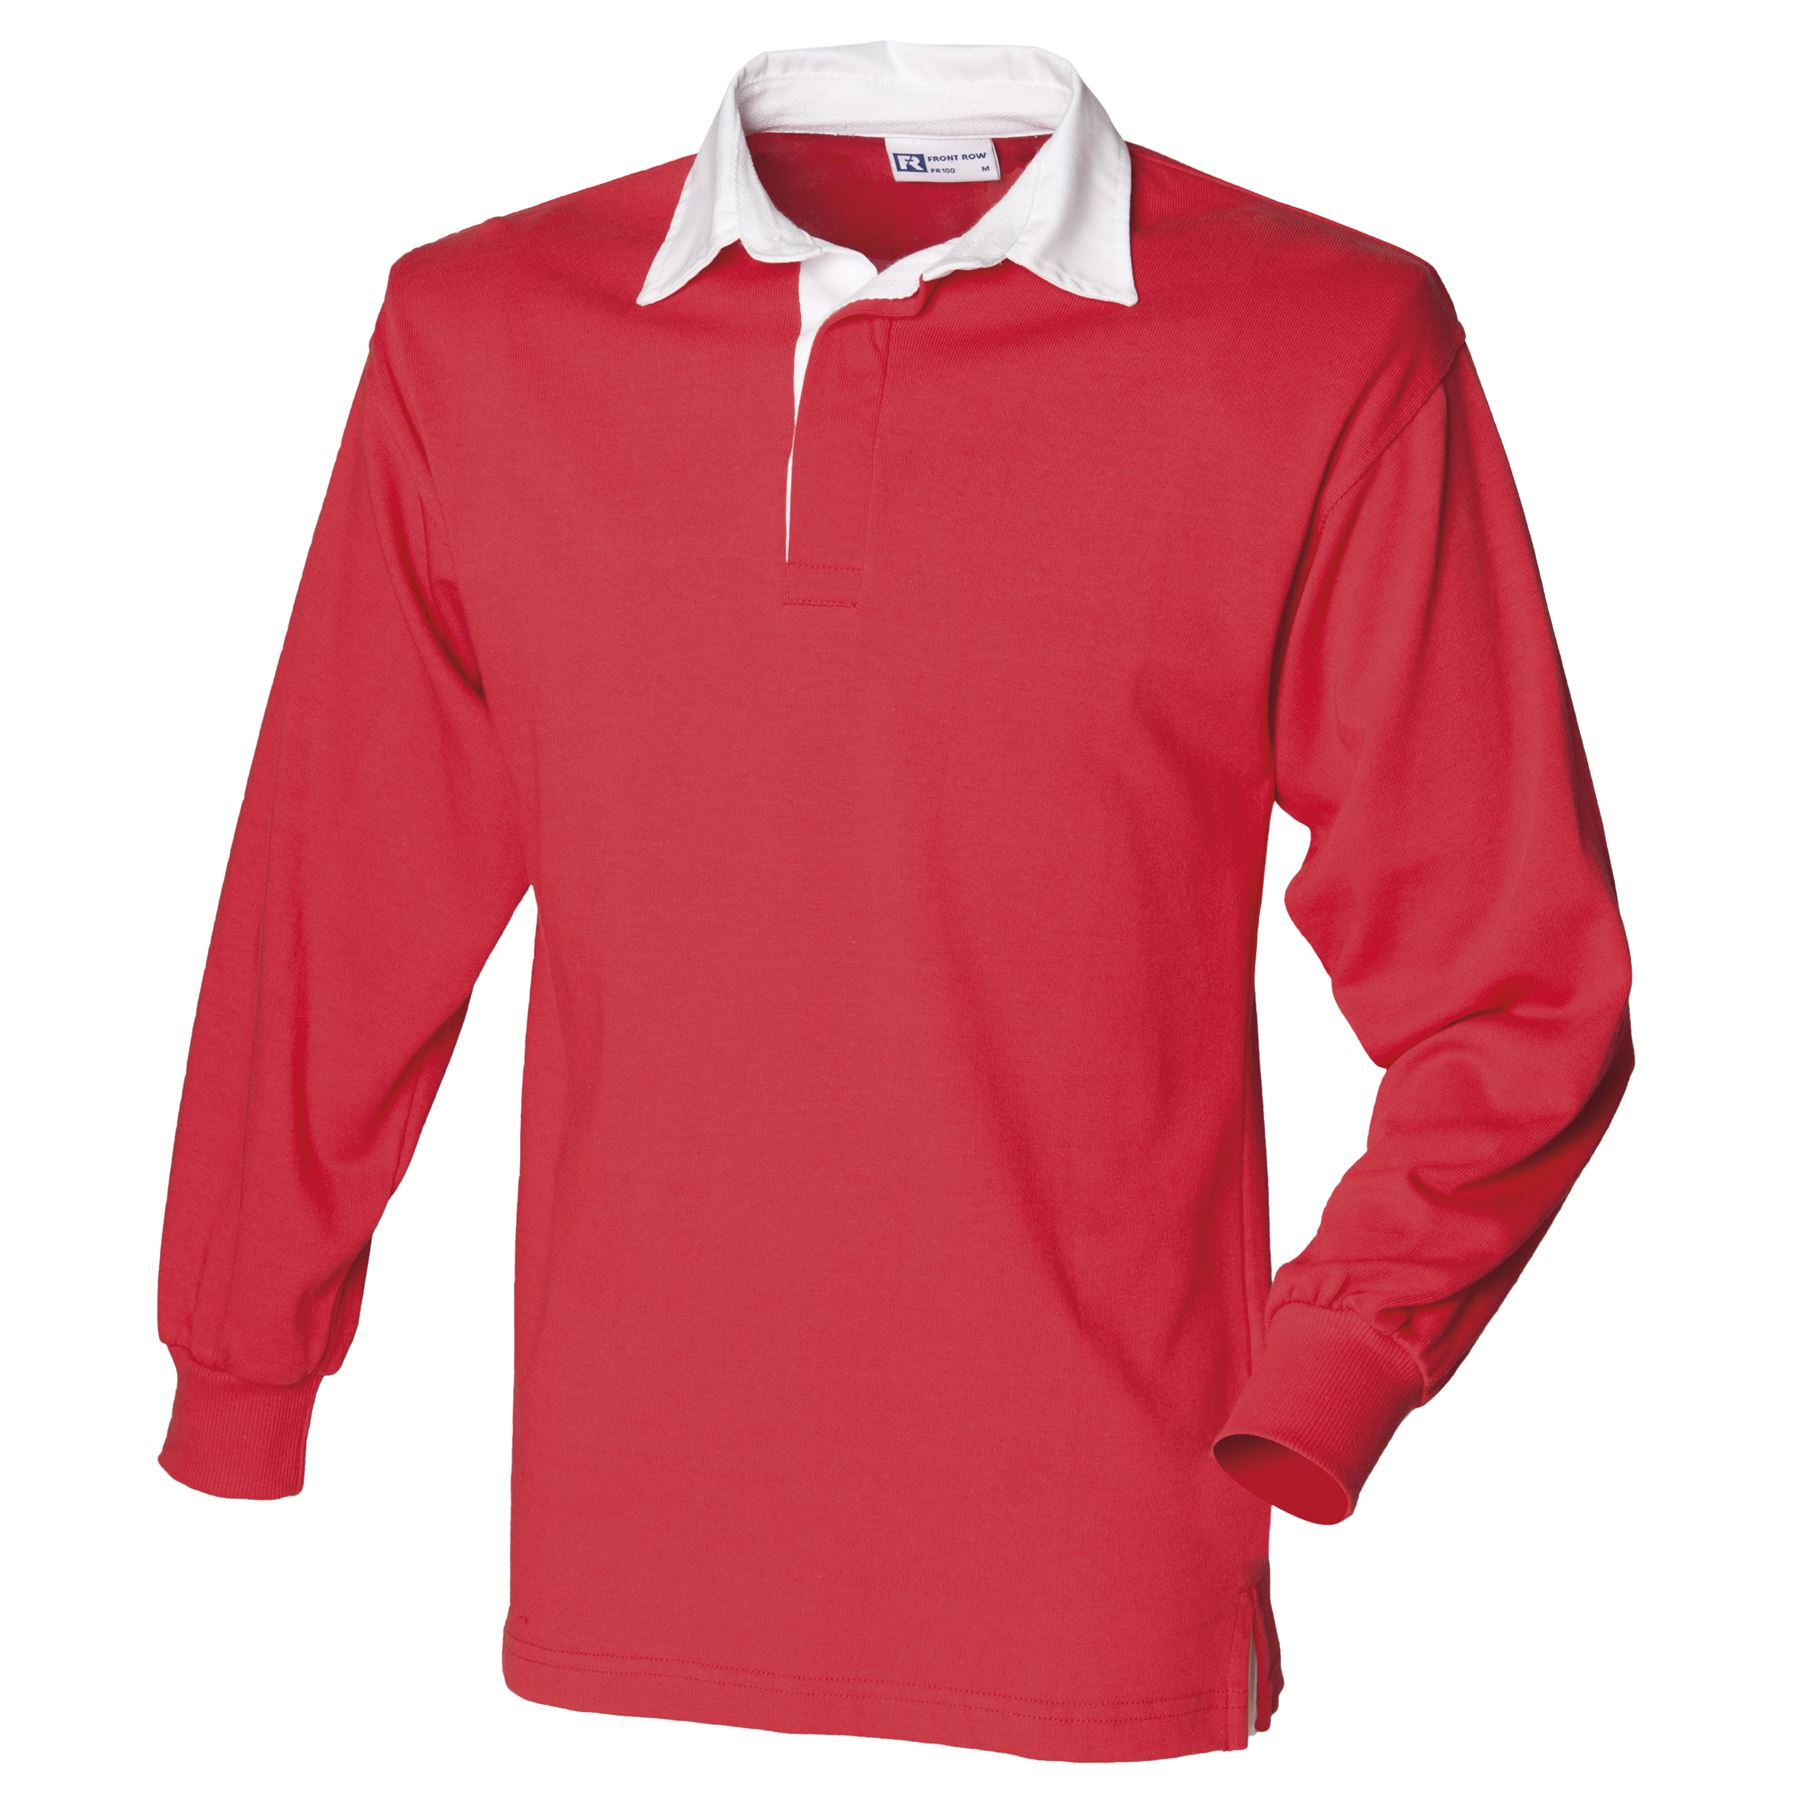 Front Row Long Sleeve Plain Rugby Shirt Red White 3xl Fr100rdwh3xl